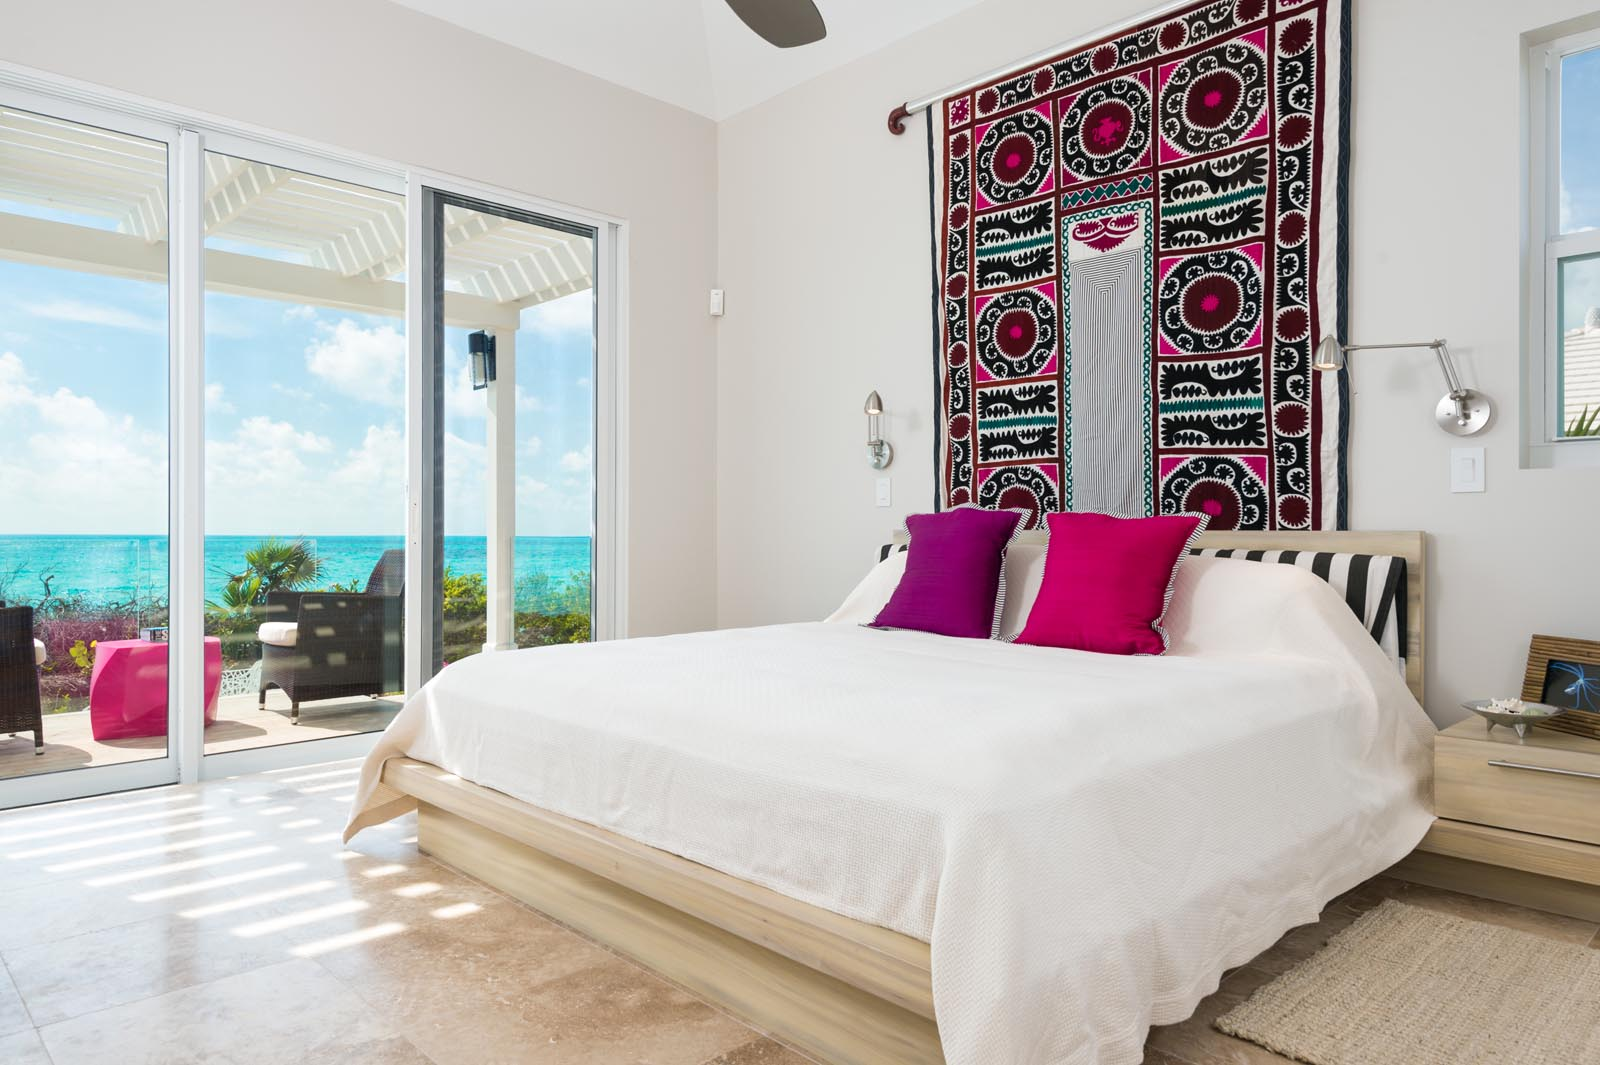 Villa Isla has 5 equal master bedrooms each with stunning views of Long Bay